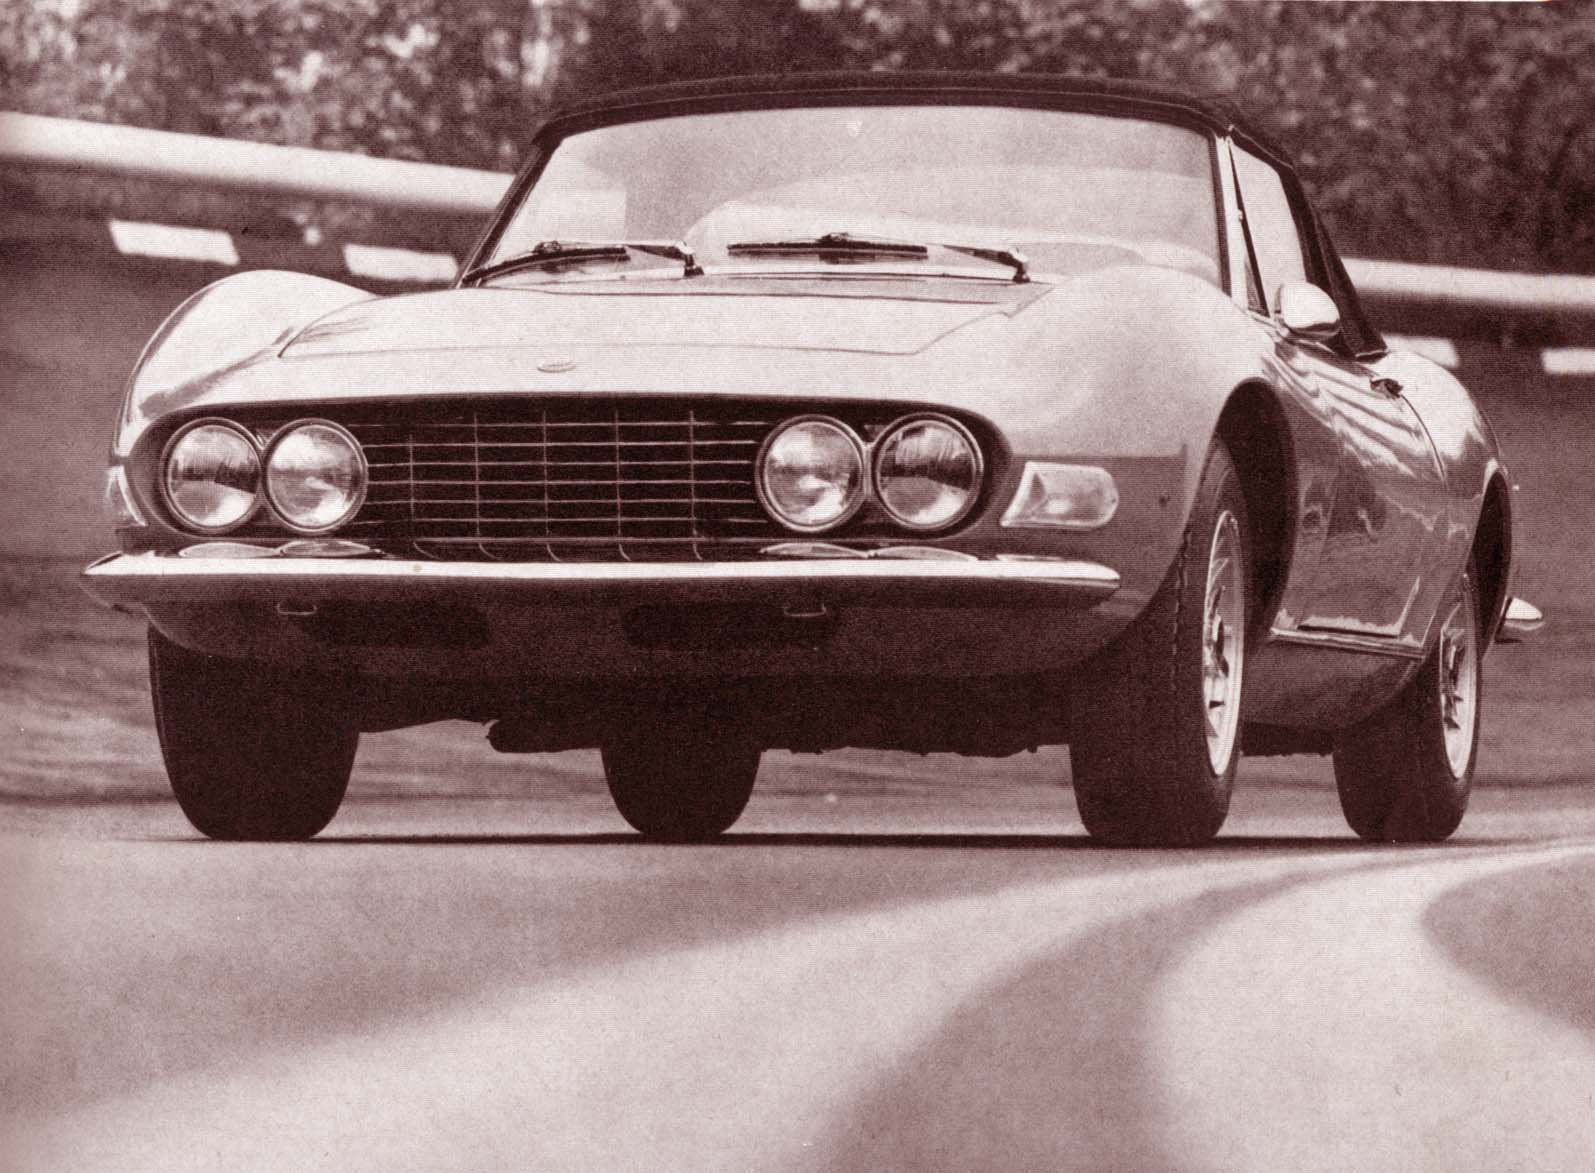 Phscollectorcarworld October 2012 1984 Pininfarina Wiring Diagram Production Of Fiat Dino Started In 1967 With Bodies Produced At Bertone And Final Assembly Done Fiats Rivolta Plant